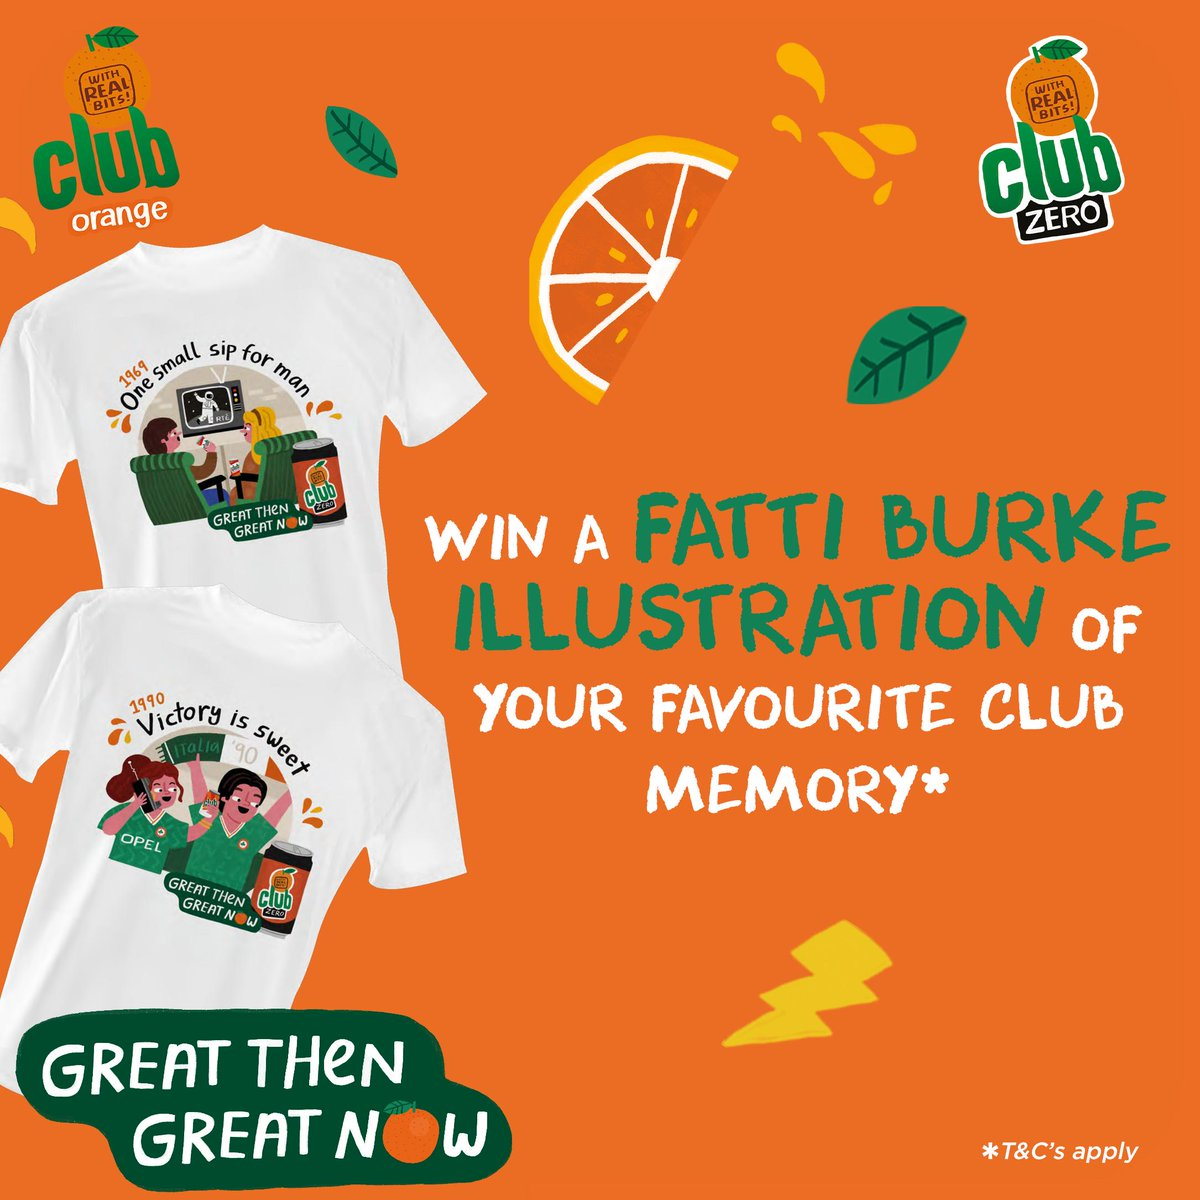 Have a favourite childhood memory? We're giving you the chance to  immortalise it on paper. Head to Facebook & share your fave childhood memory on our post, then you could see it brought to life by Irish  Illustrator Fatti Burke #GreatThenGreatNow  T&C's: https://t.co/q8g77n9PR5 https://t.co/h99fBWgpPt